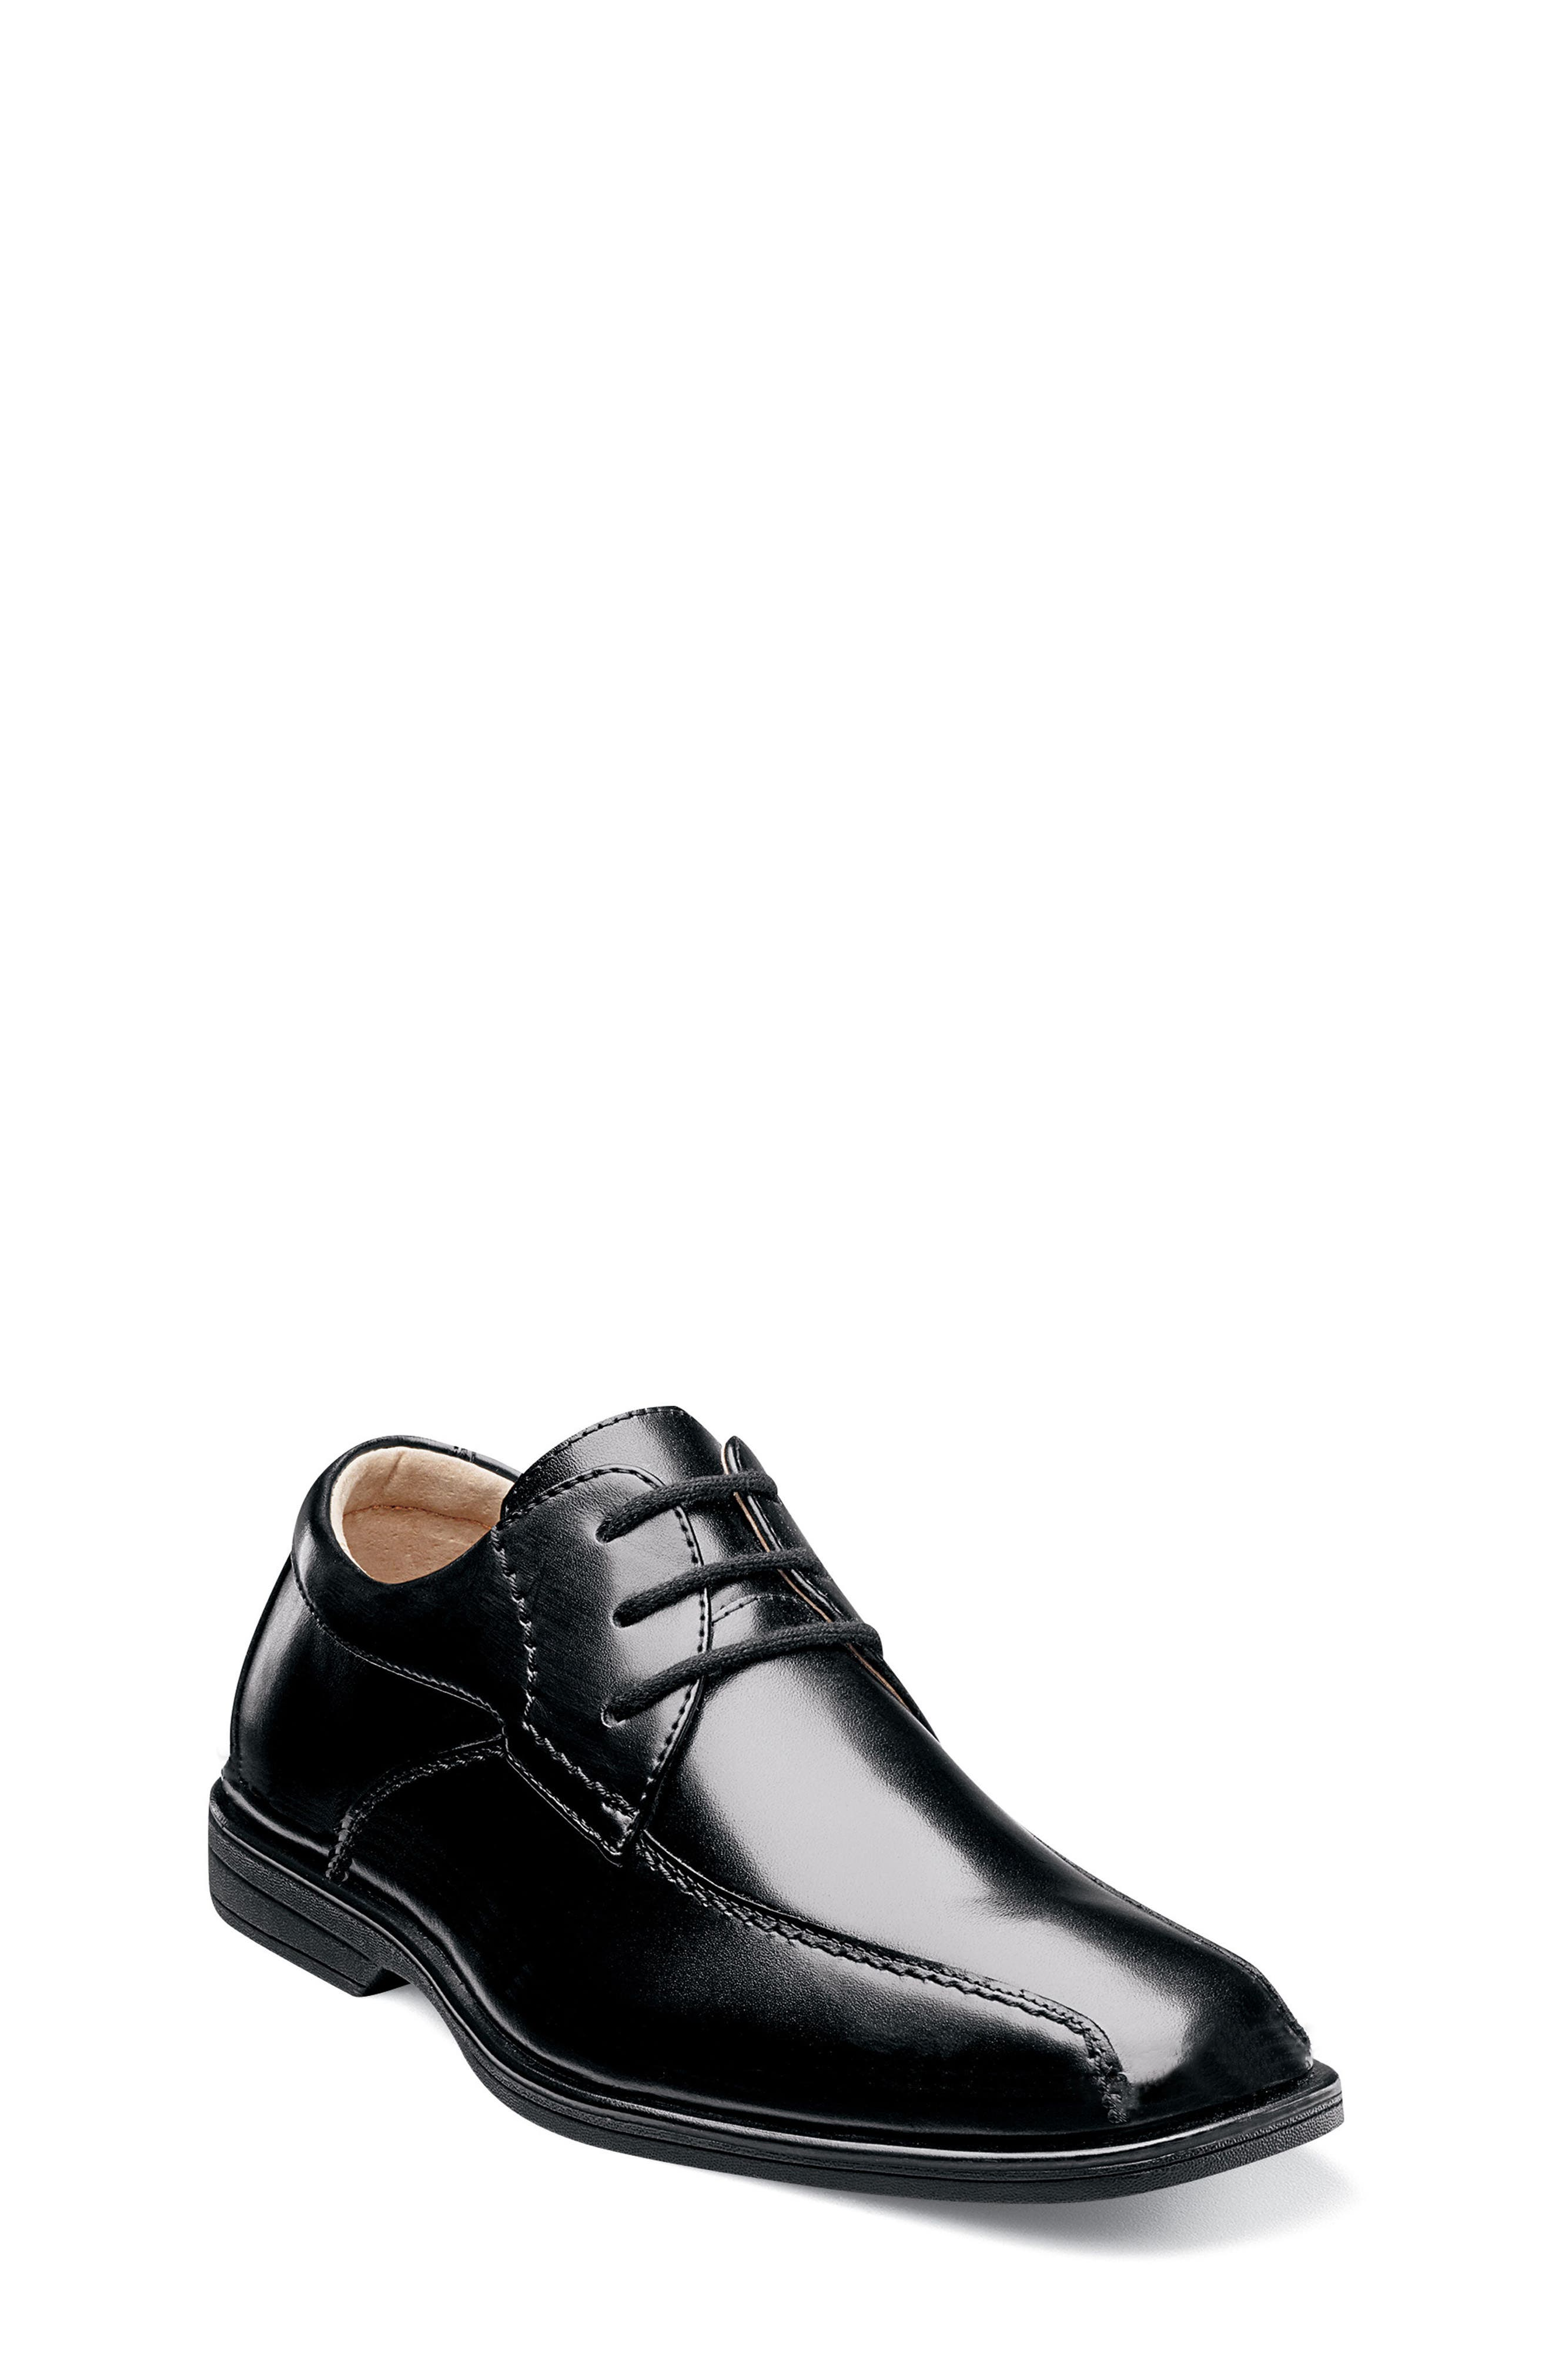 'Reveal' Oxford,                             Main thumbnail 1, color,                             BLACK